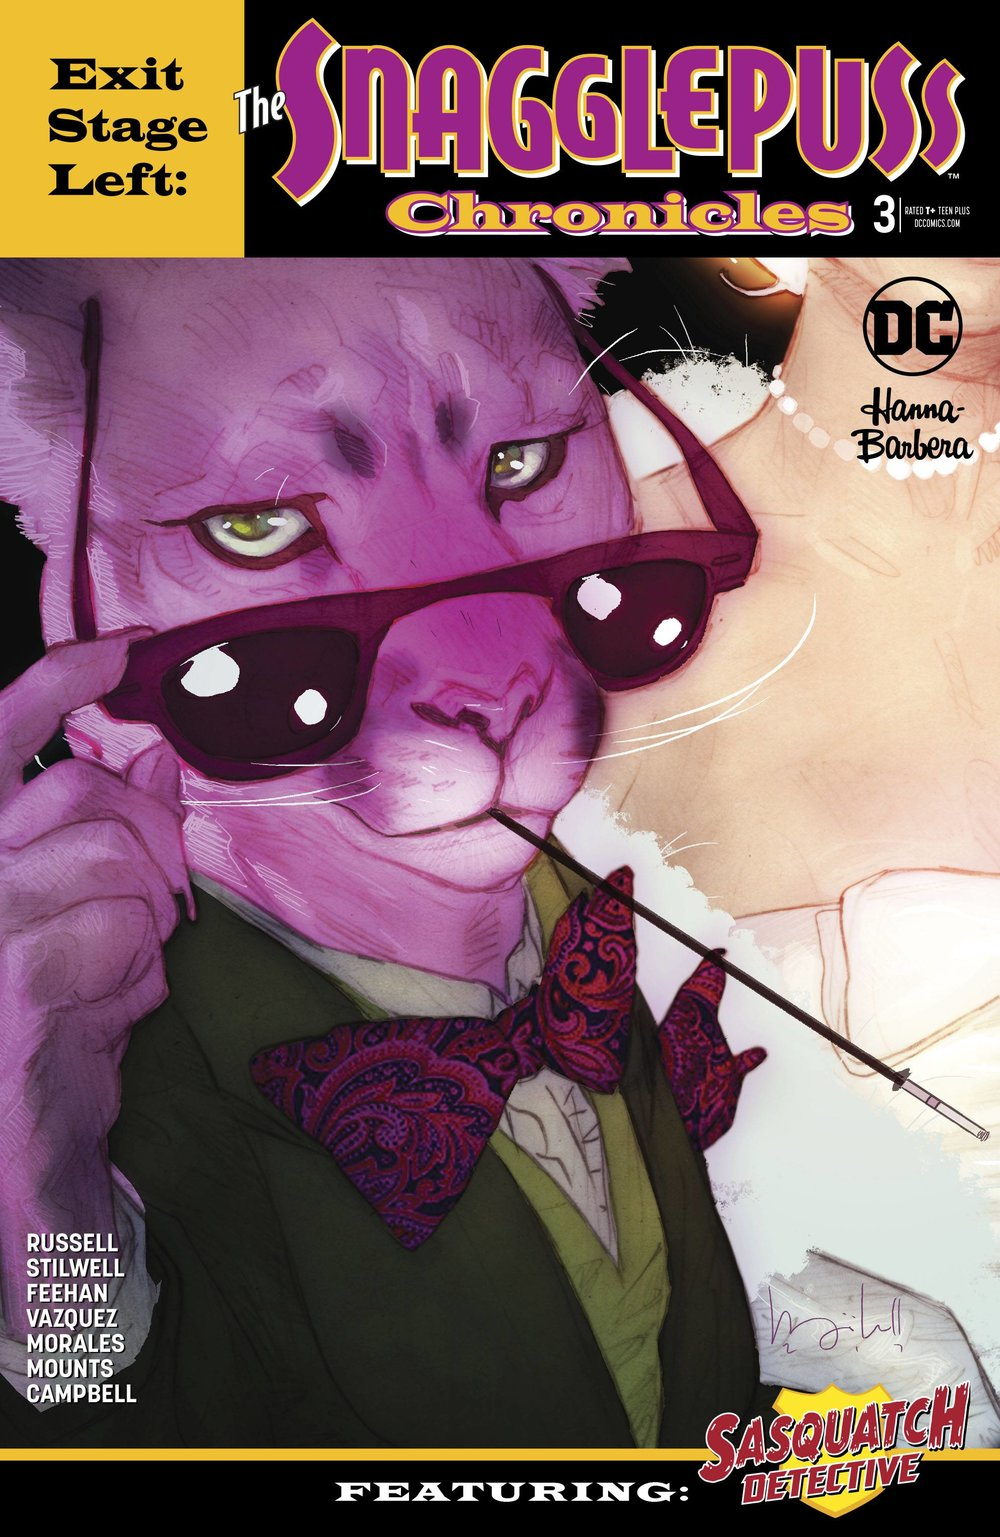 EXIT STAGE LEFT THE SNAGGLEPUSS CHRONICLES 3 of 6.jpg